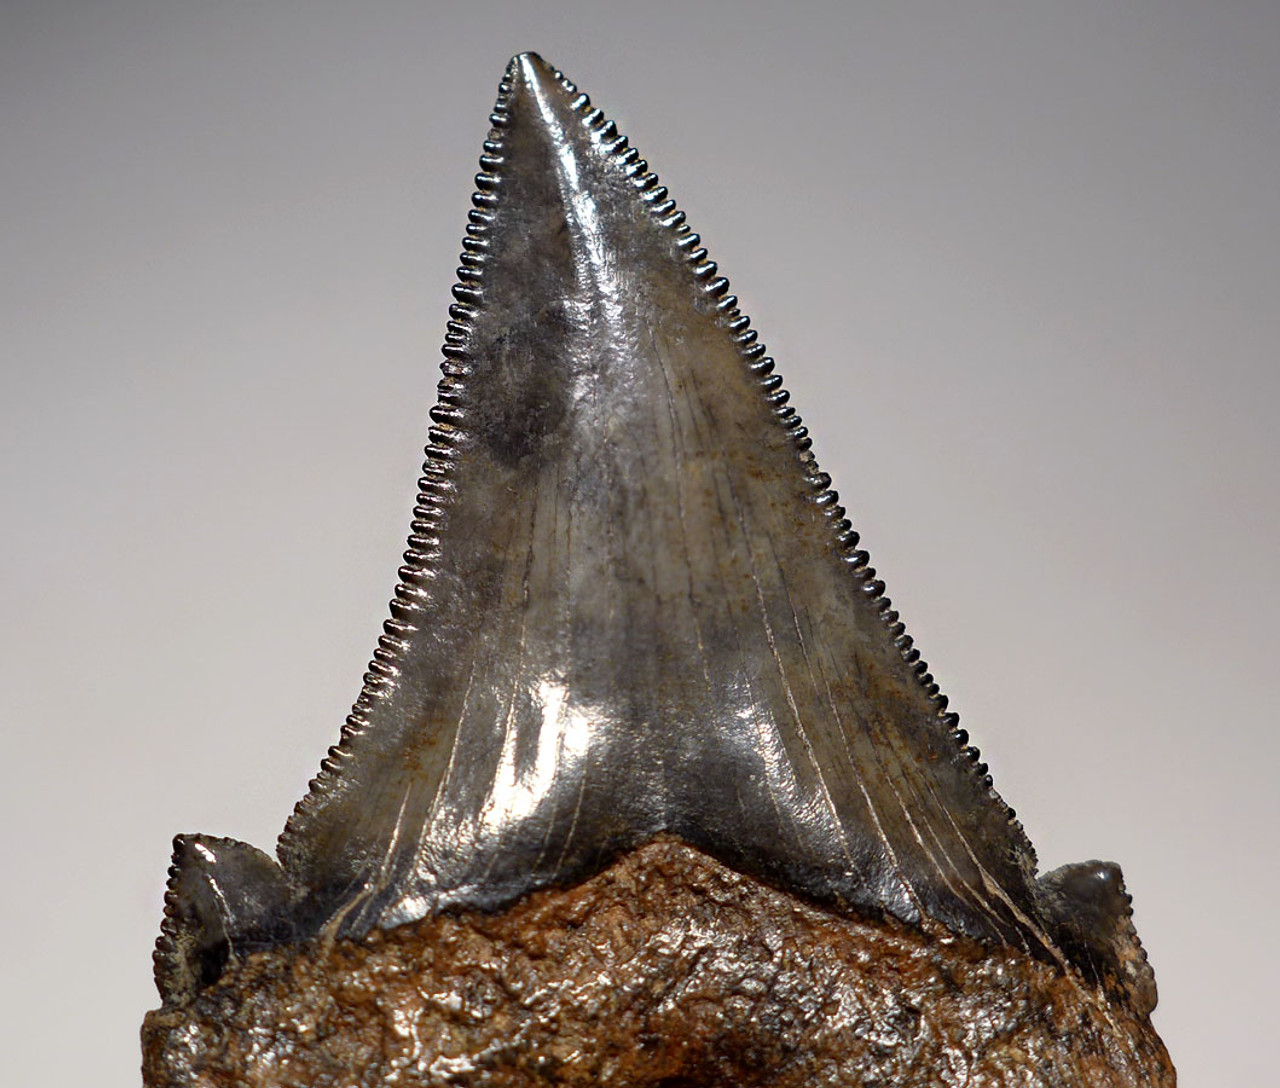 SHX051 - COLLECTOR GRADE CARCHAROCLES ANGUSTIDENS FOSSIL SHARK TOOTH WITH AMAZING MOTTLED ENAMEL